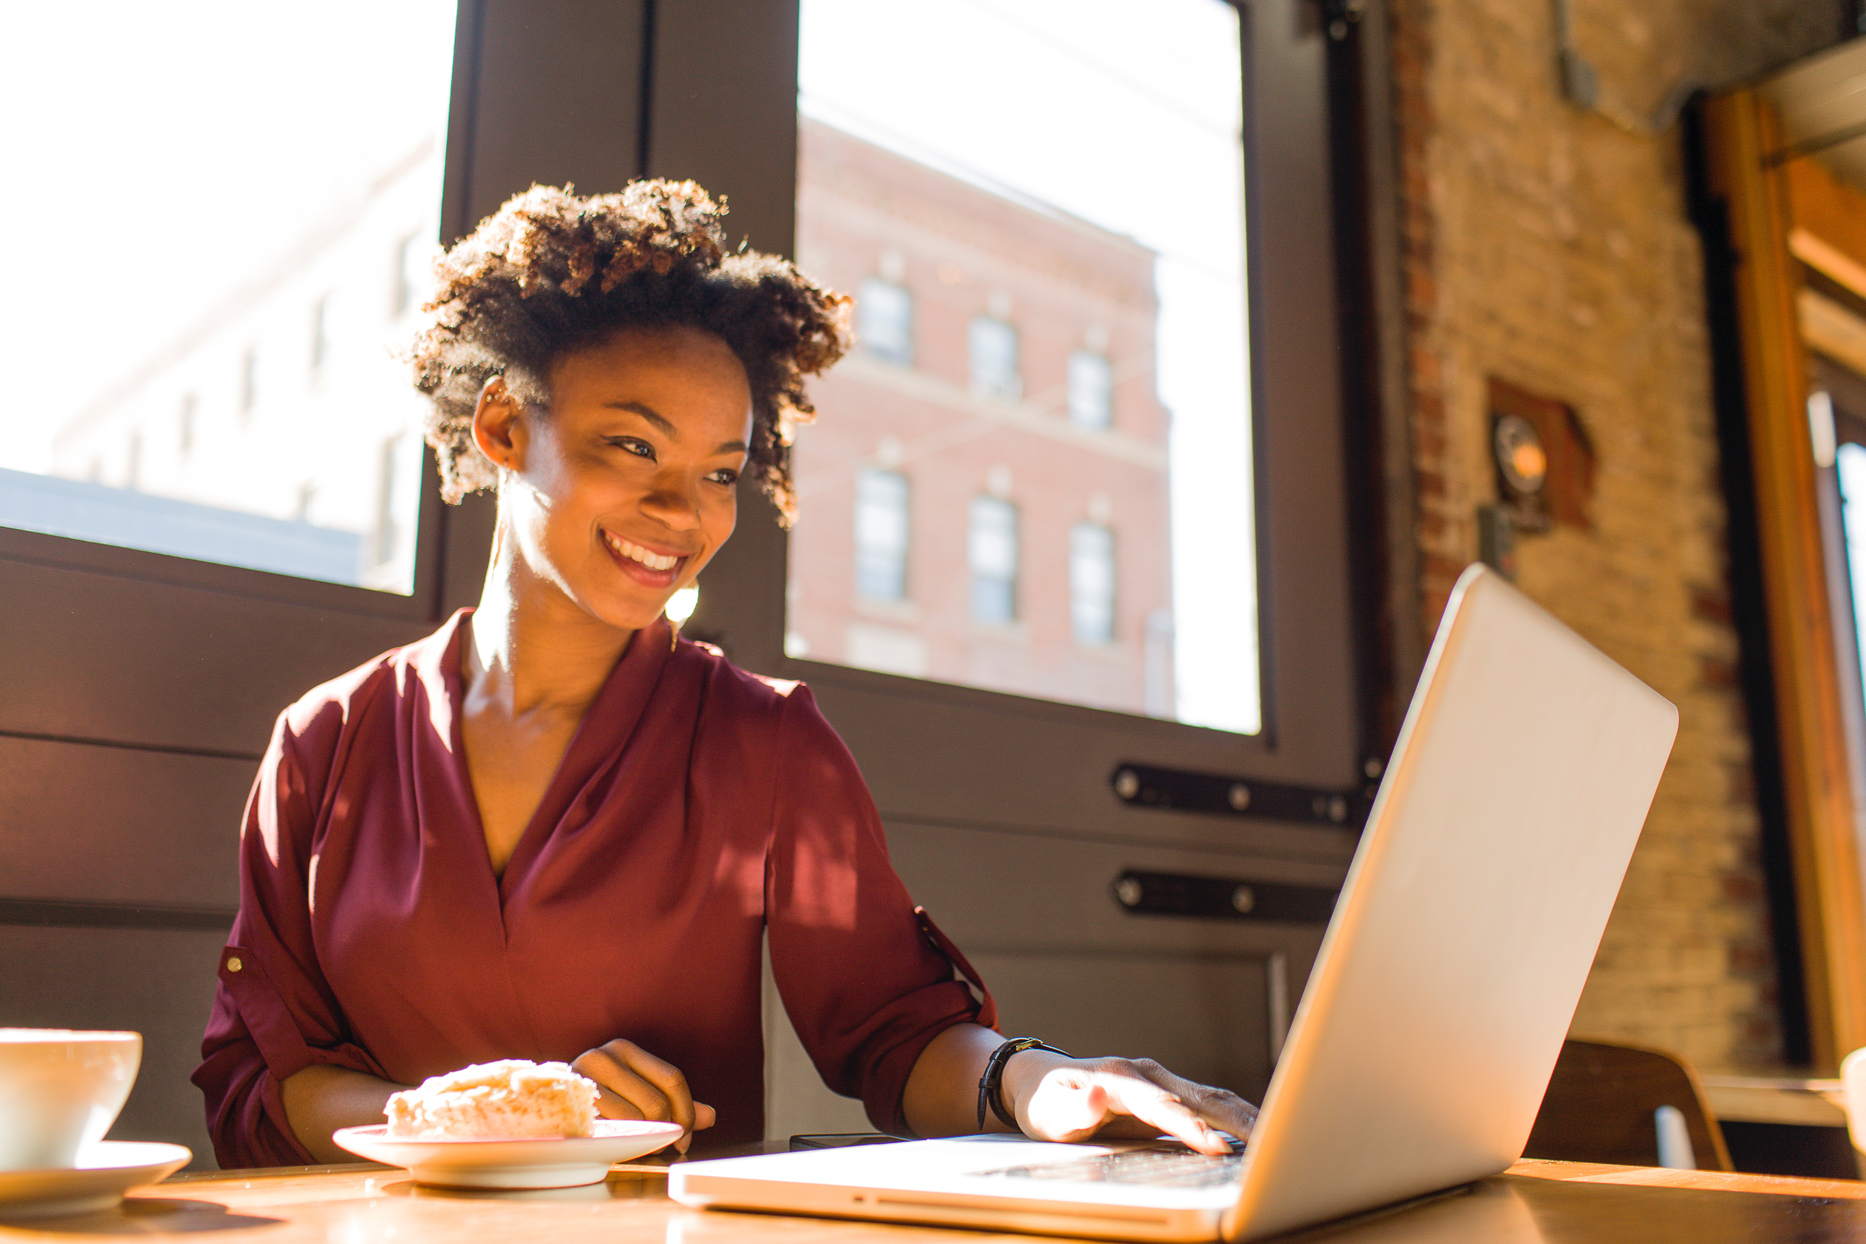 woman smiling looking down at laptop